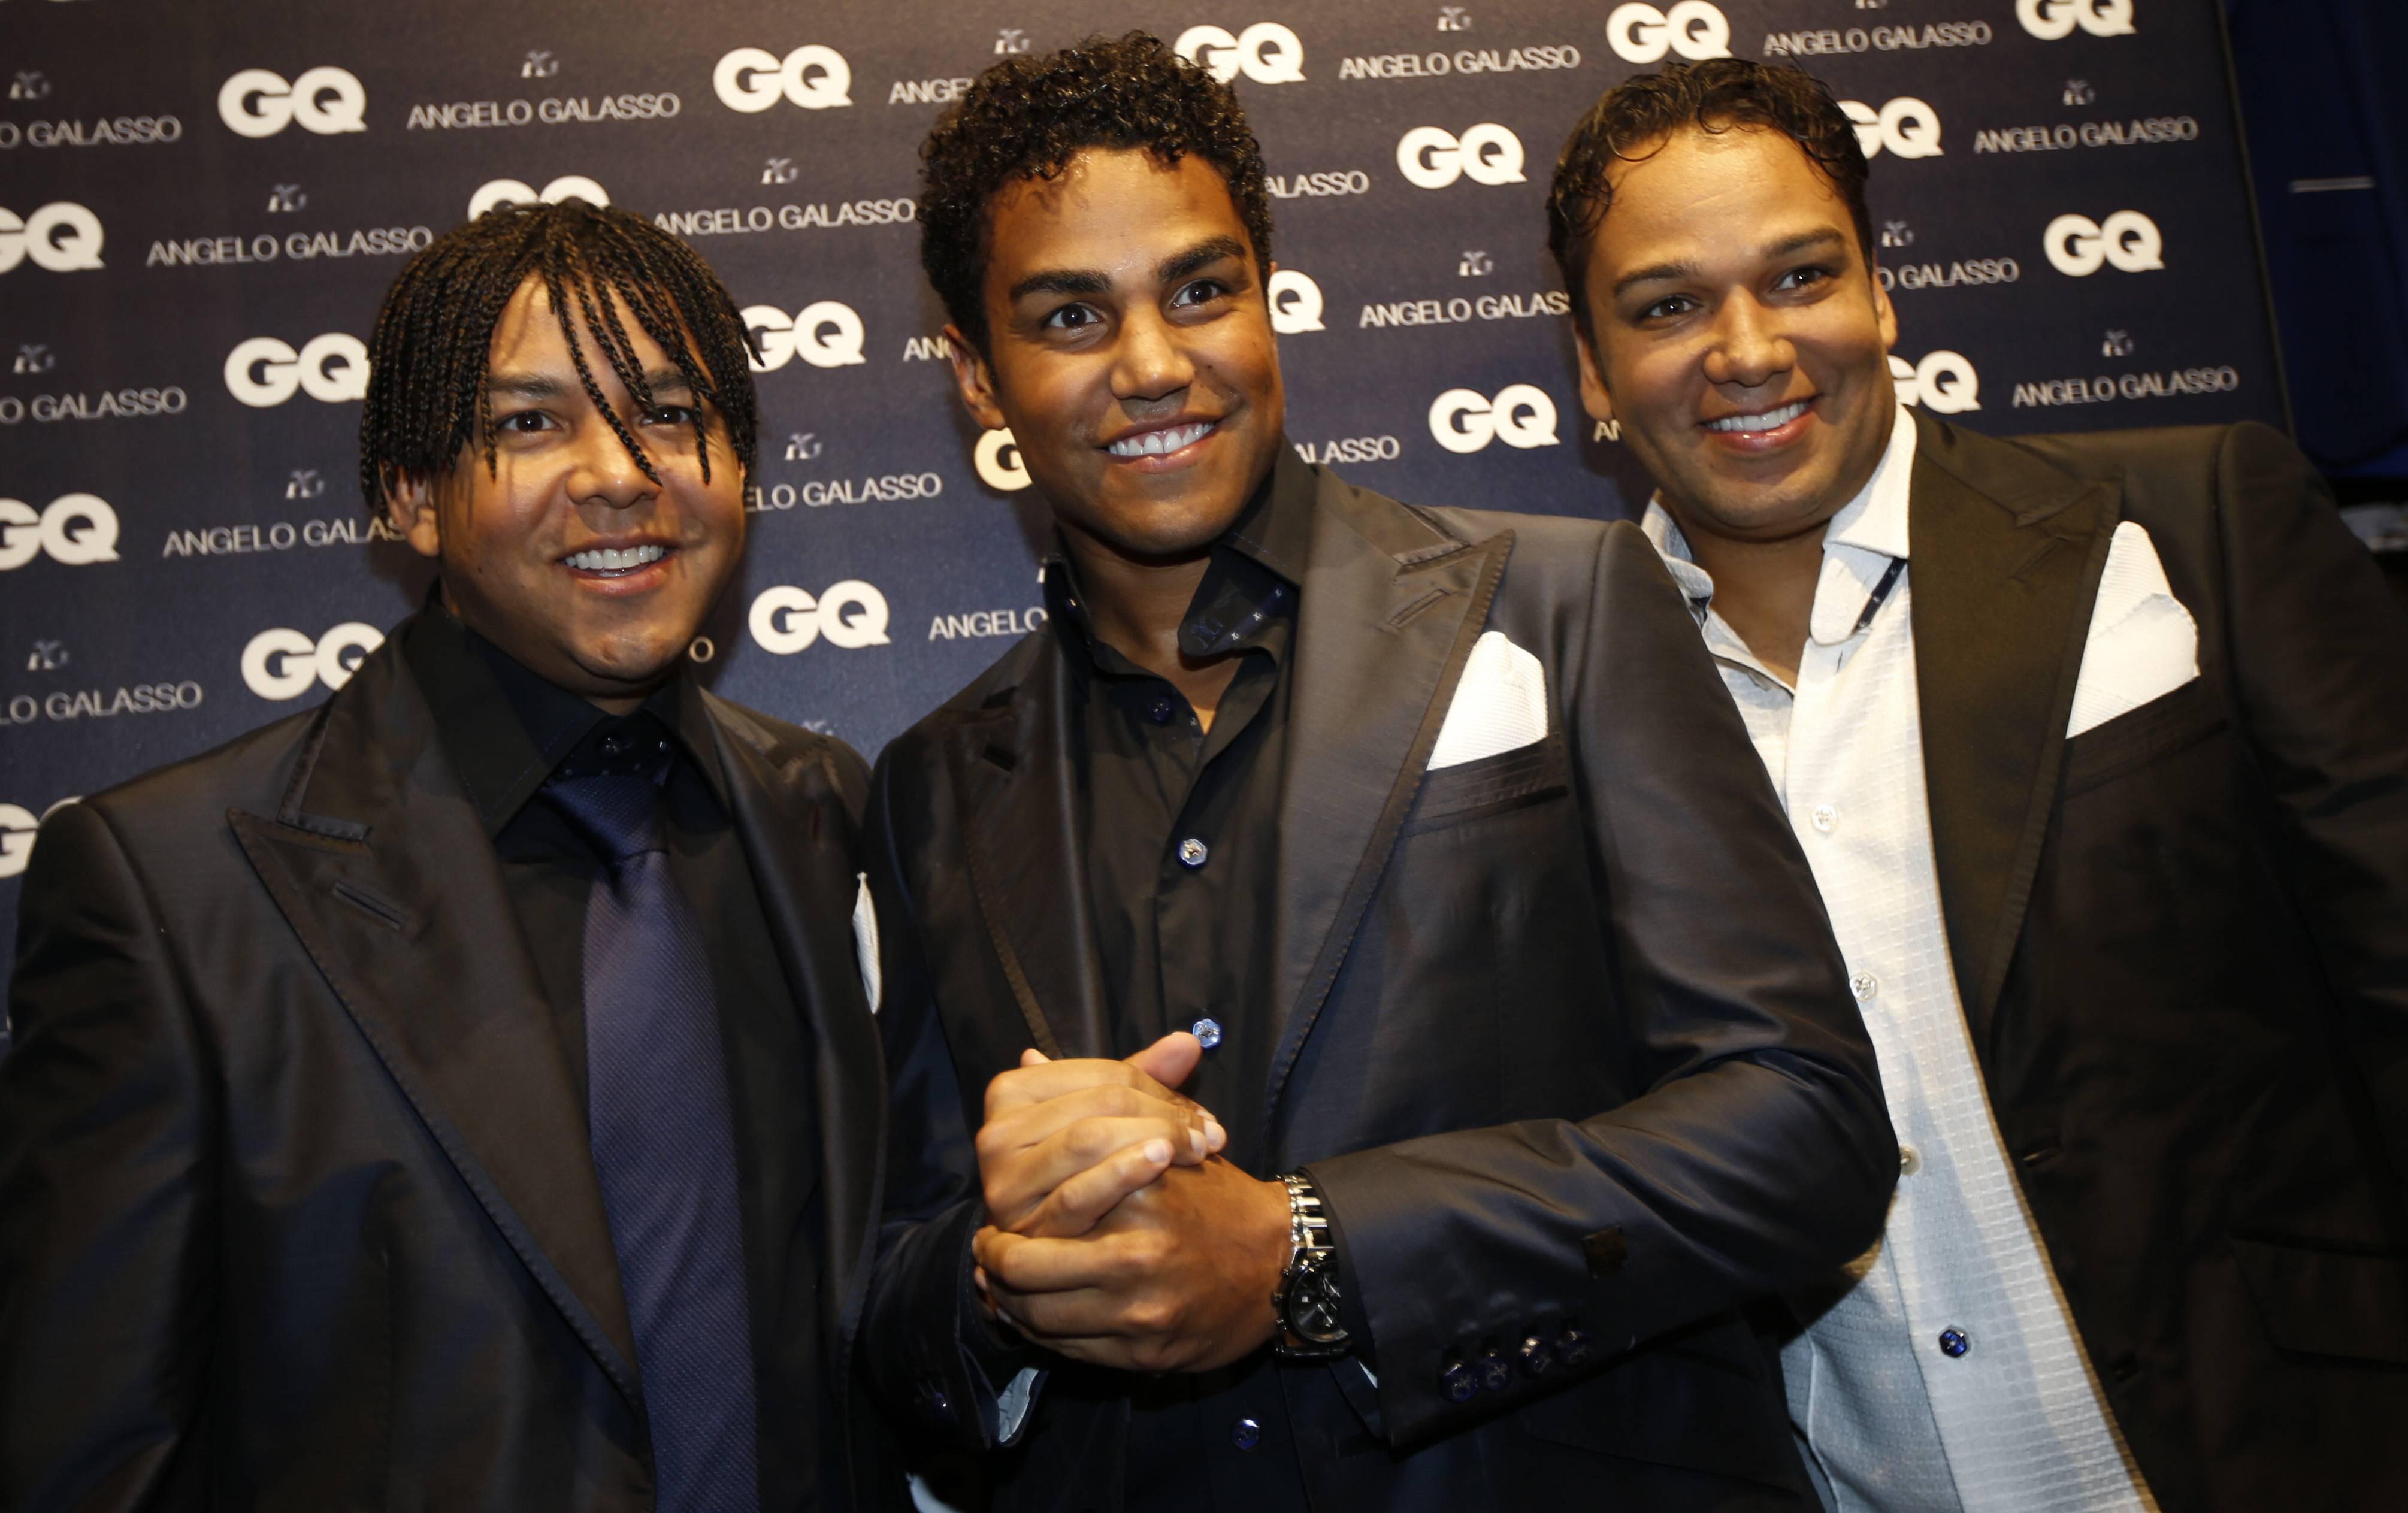 3T group members from left, Taj, TJ and Taryll, nephews of the late Michael Jackson, say they are ready to take up the pop superstar's legacy, ending a 15-year hiatus prolonged by his dispute with Sony and untimely death.